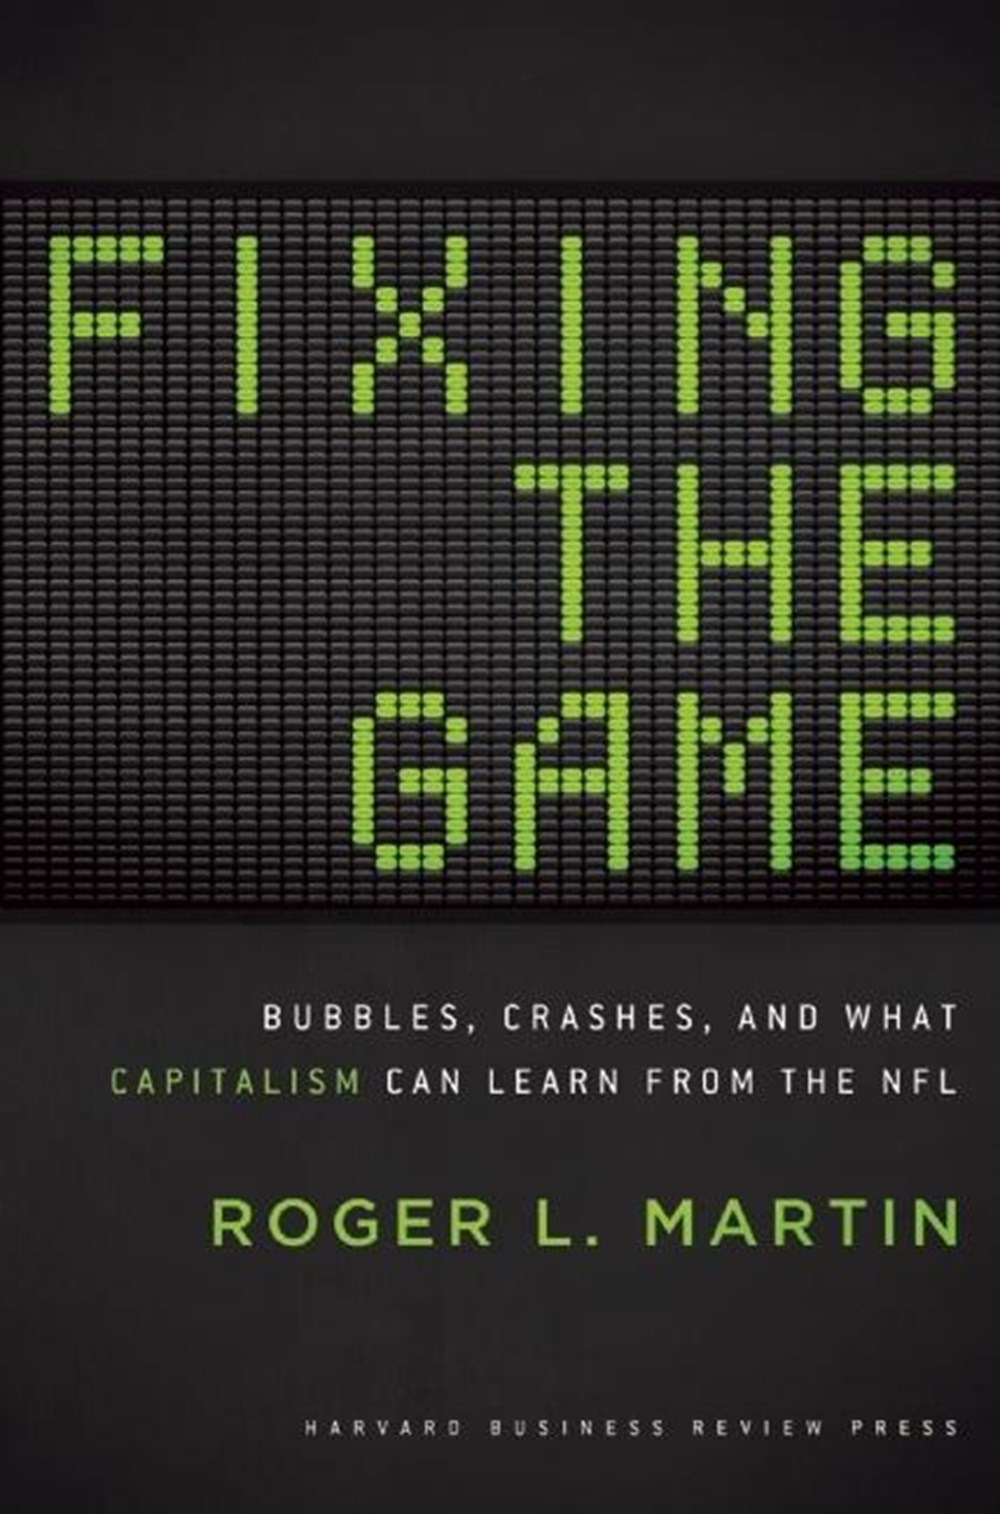 Fixing the Game Bubbles, Crashes, and What Capitalism Can Learn from the NFL